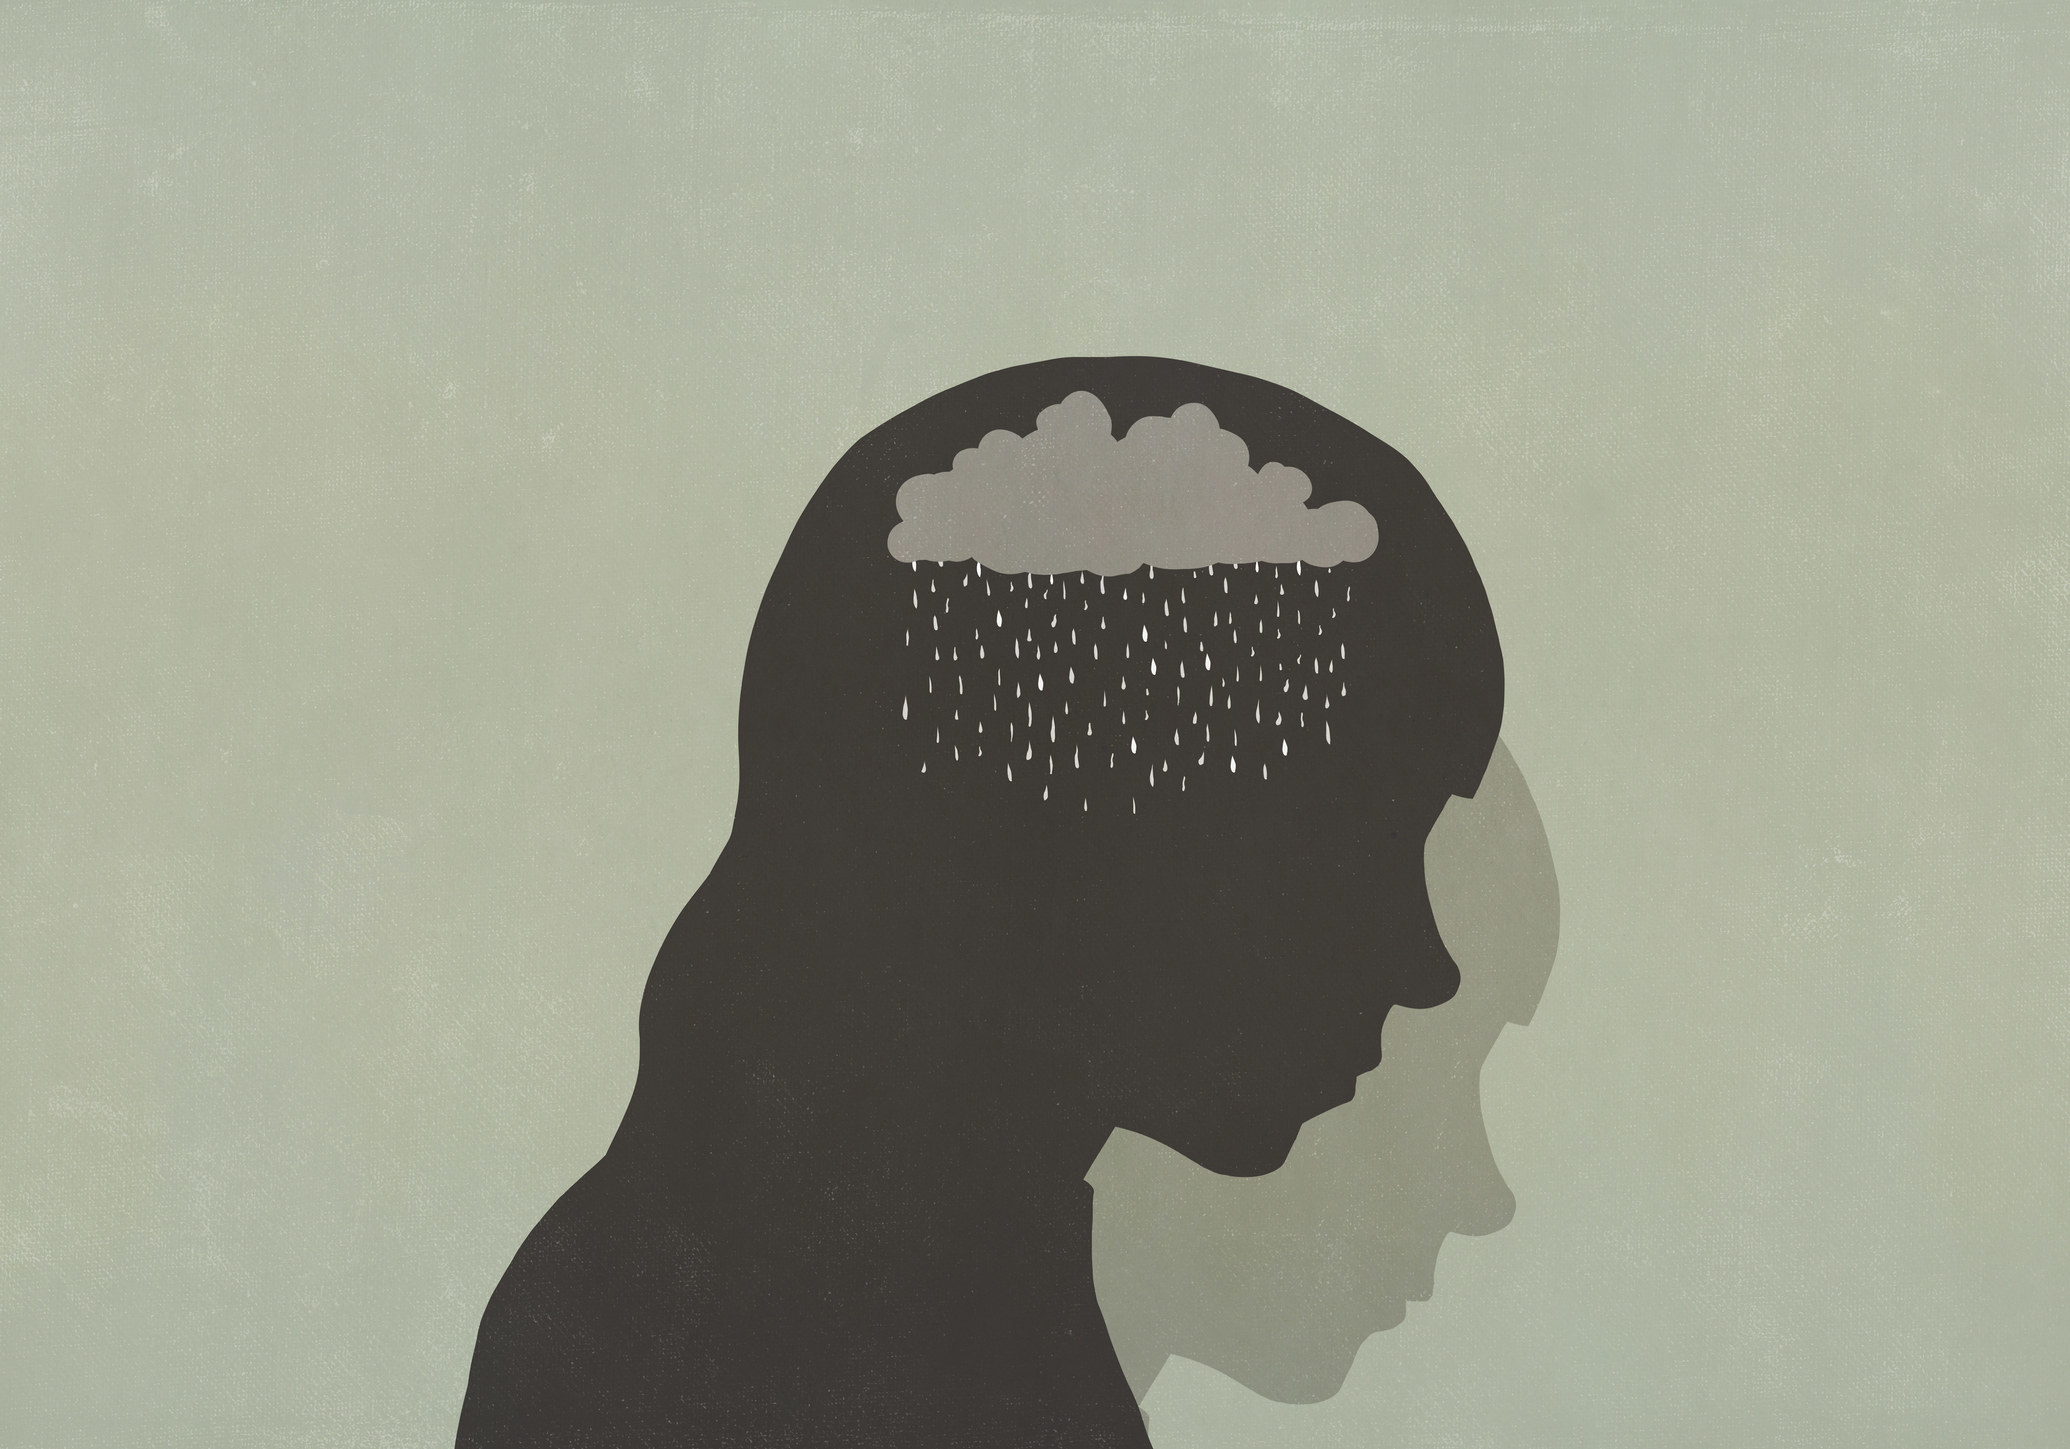 An illustration of a person with a cloud and rain inside of their head